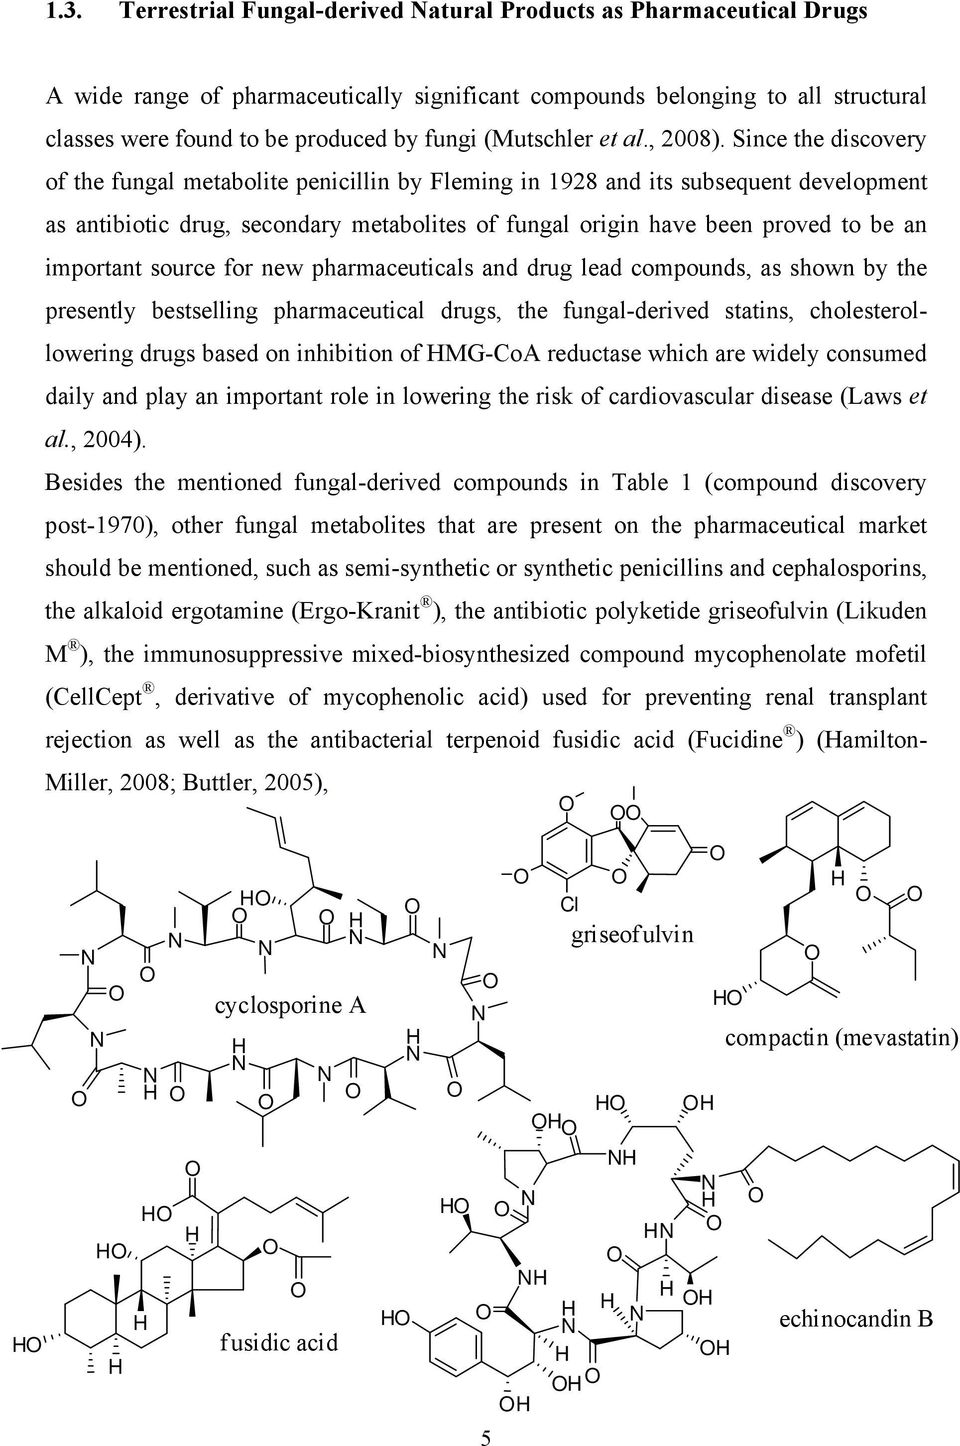 Since the discovery of the fungal metabolite penicillin by Fleming in 1928 and its subsequent development as antibiotic drug, secondary metabolites of fungal origin have been proved to be an